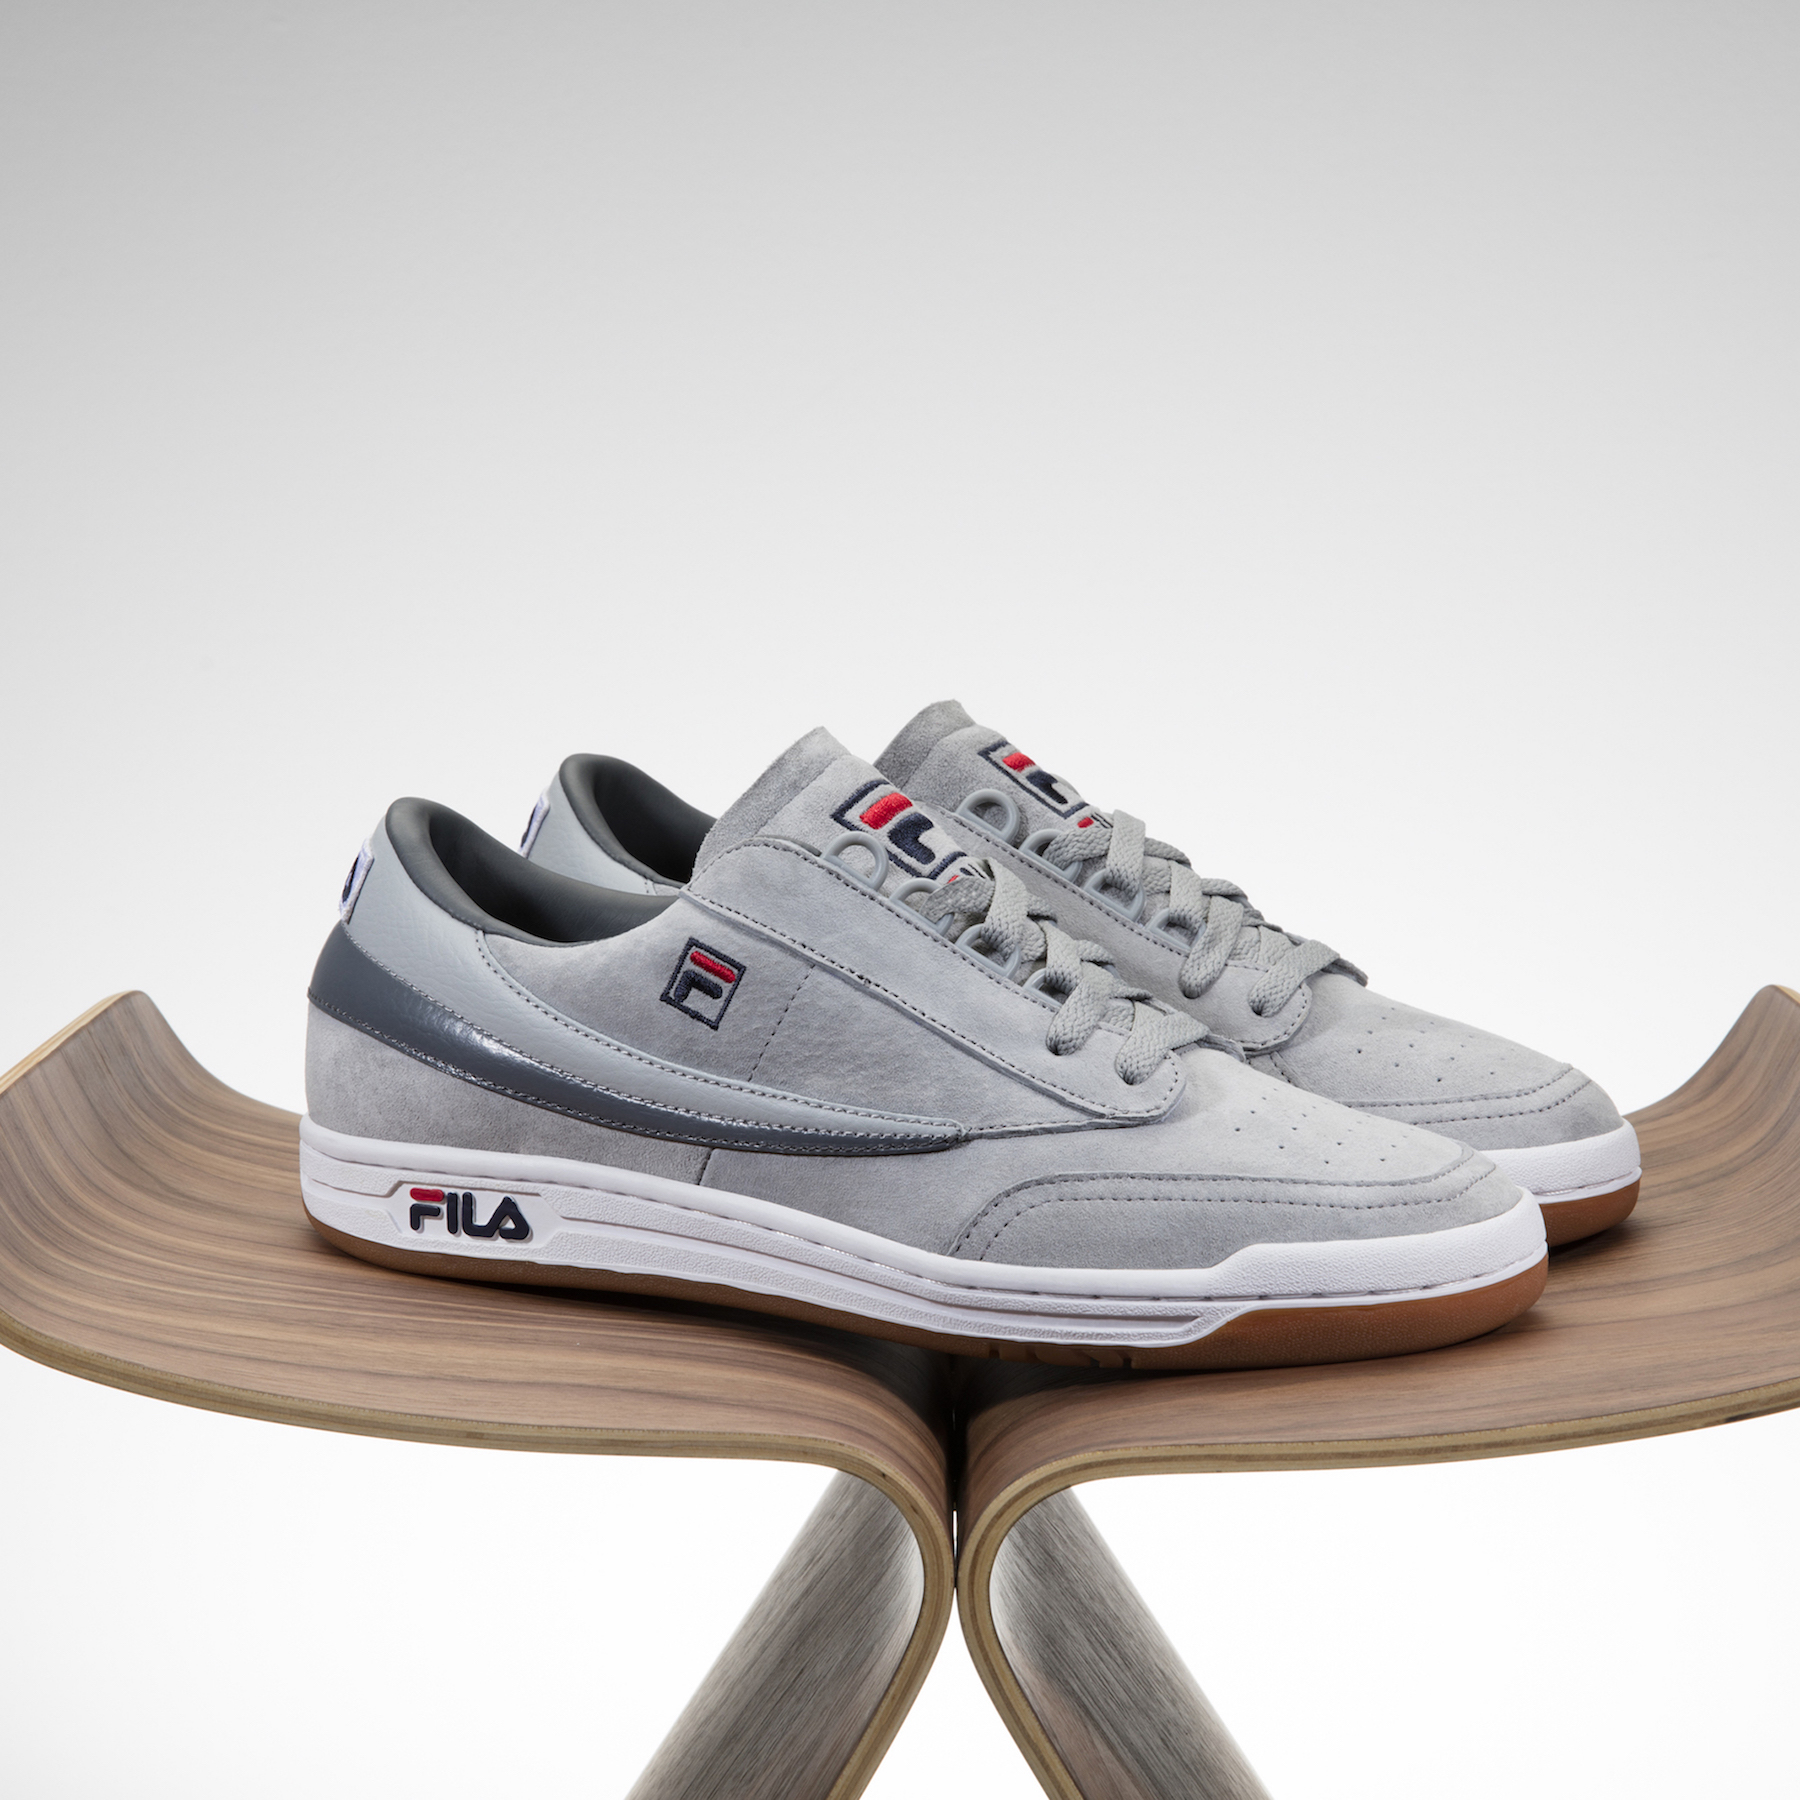 fila original tennis concrete gum pack 1